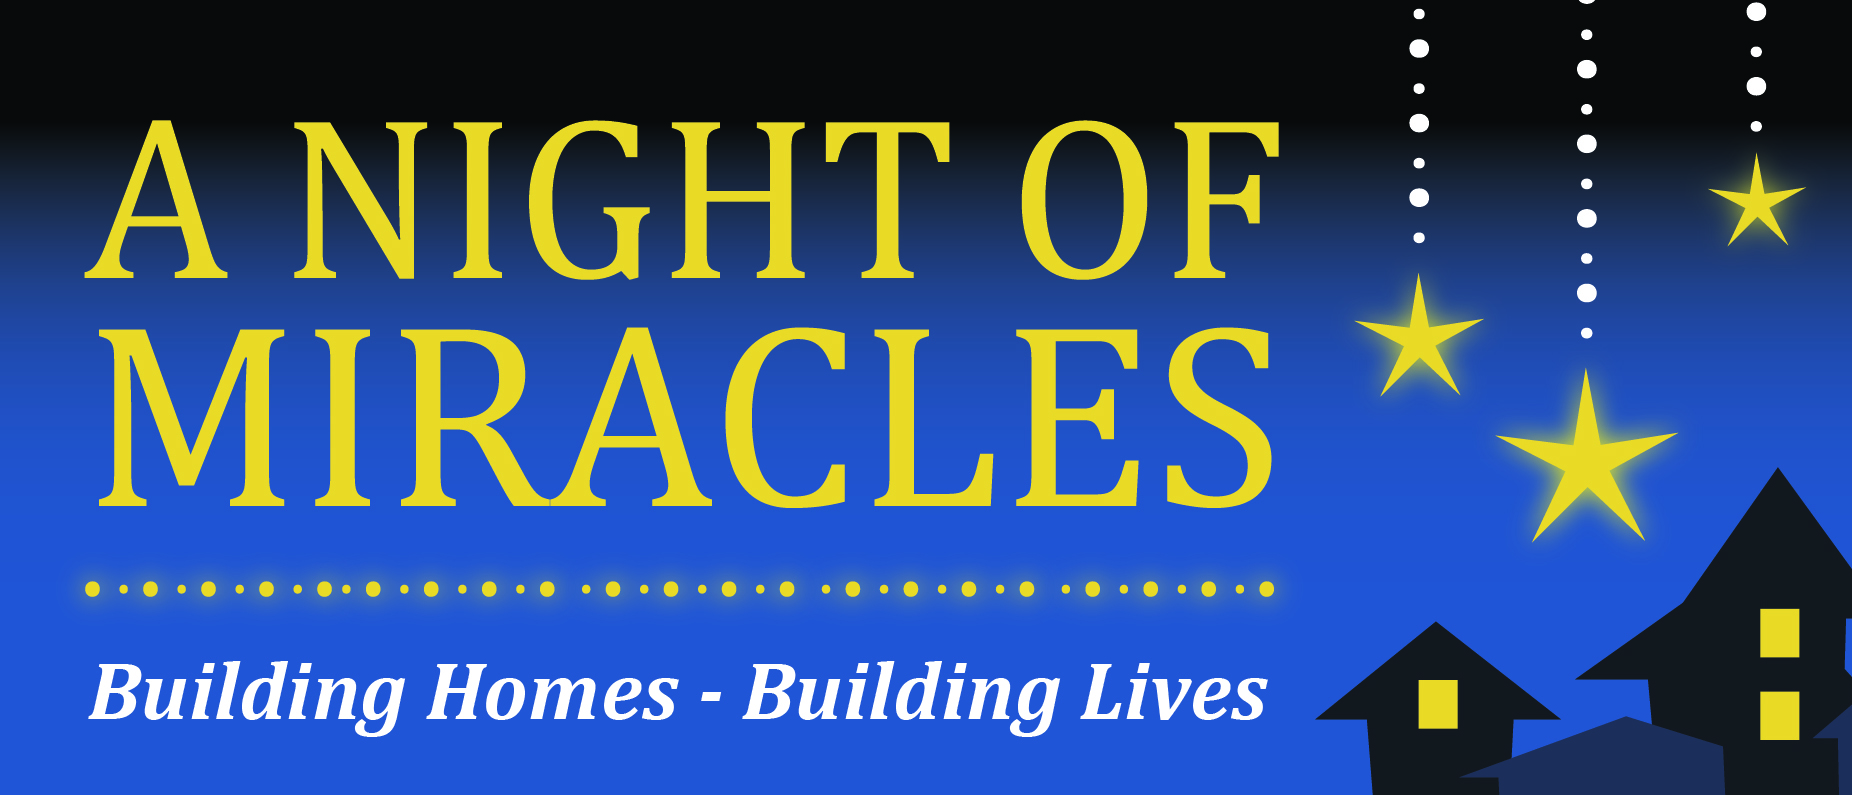 Night_of_Miracles Social Media.jpg